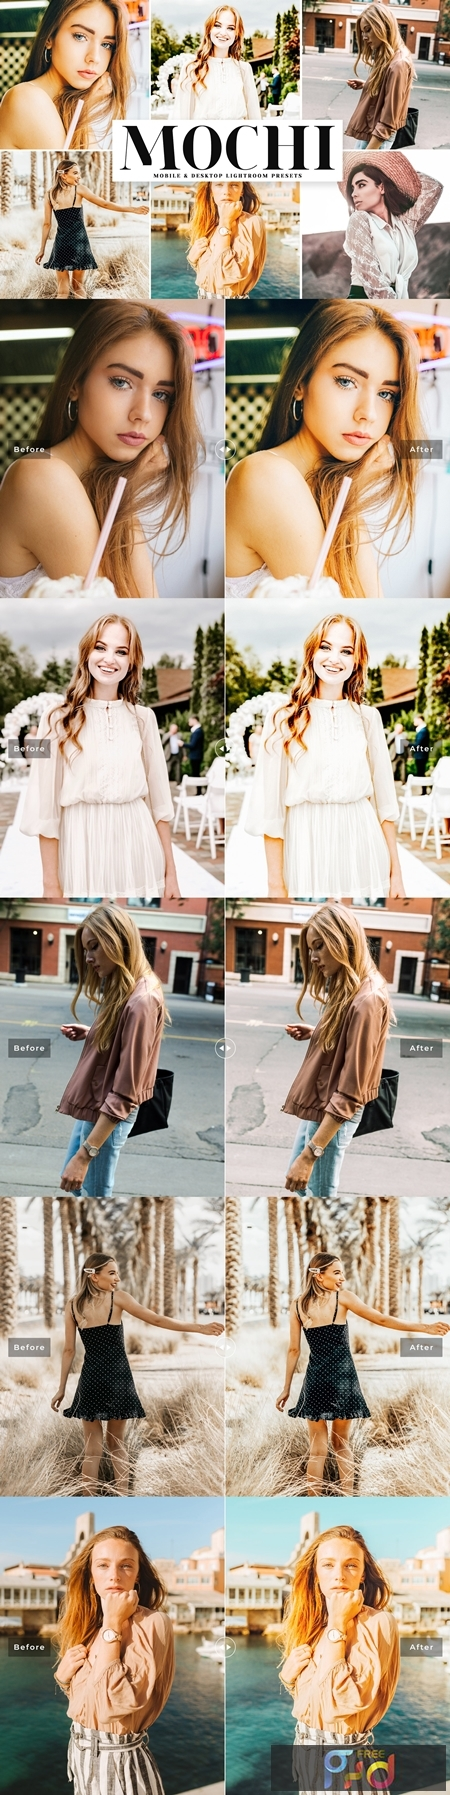 Mochi Lightroom Presets Pack 4079756 1